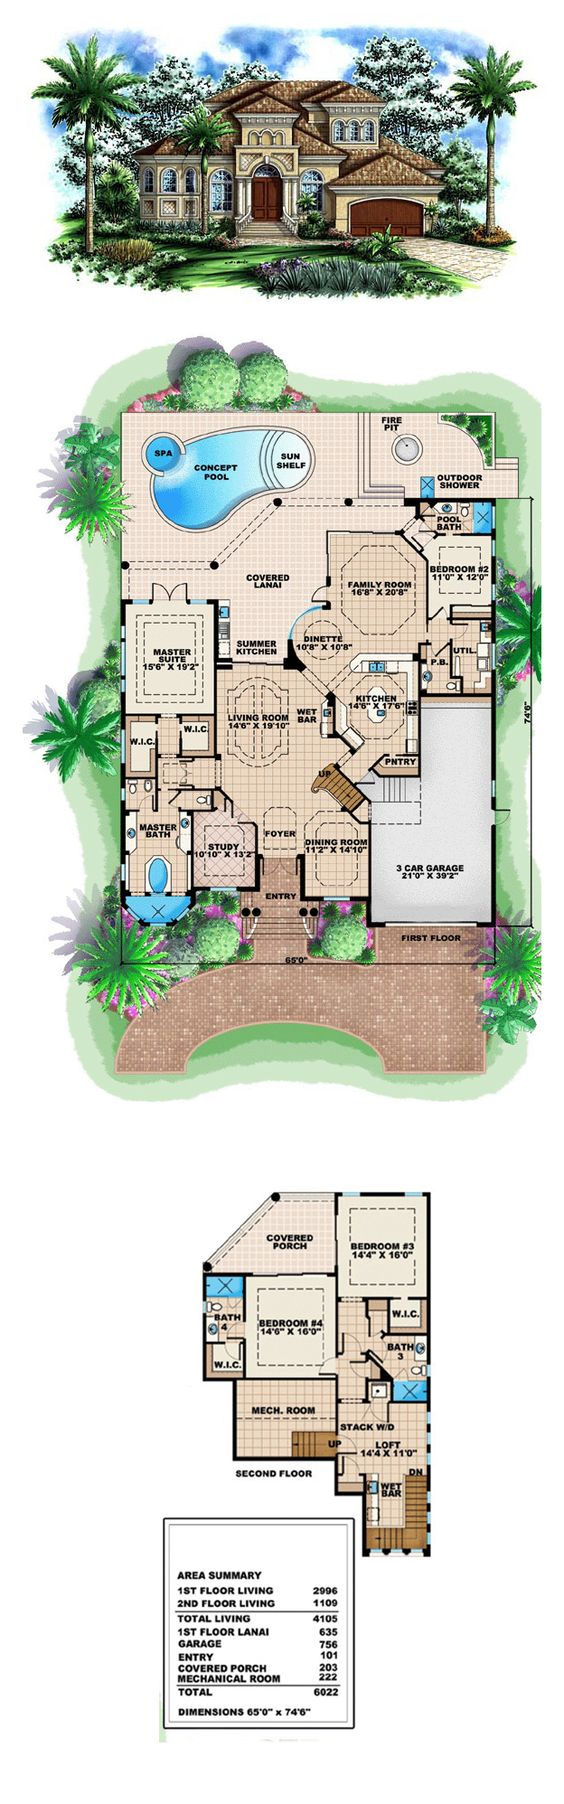 Florida Mediterranean House Plan 60437 Florida Houses